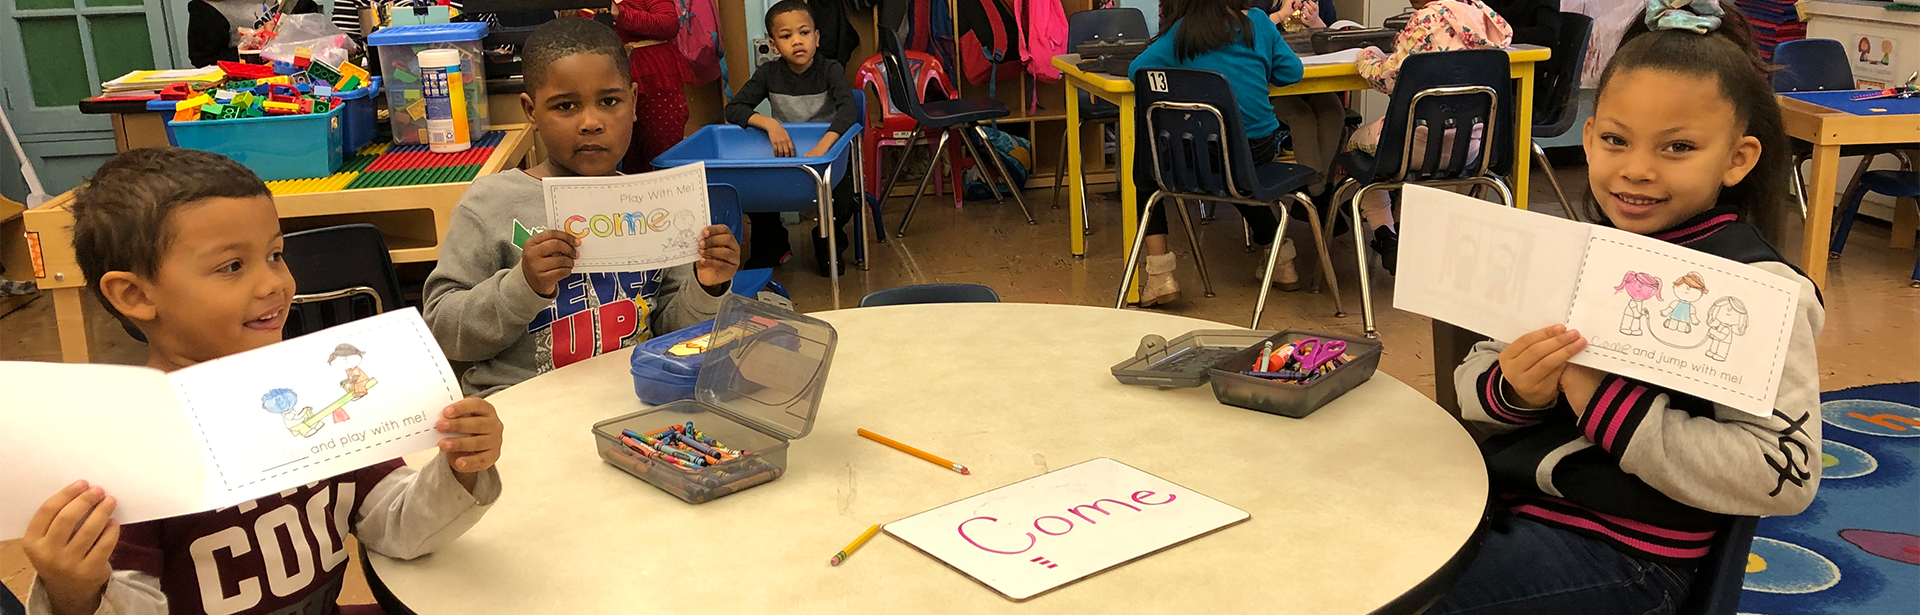 Students in class holding up art activity